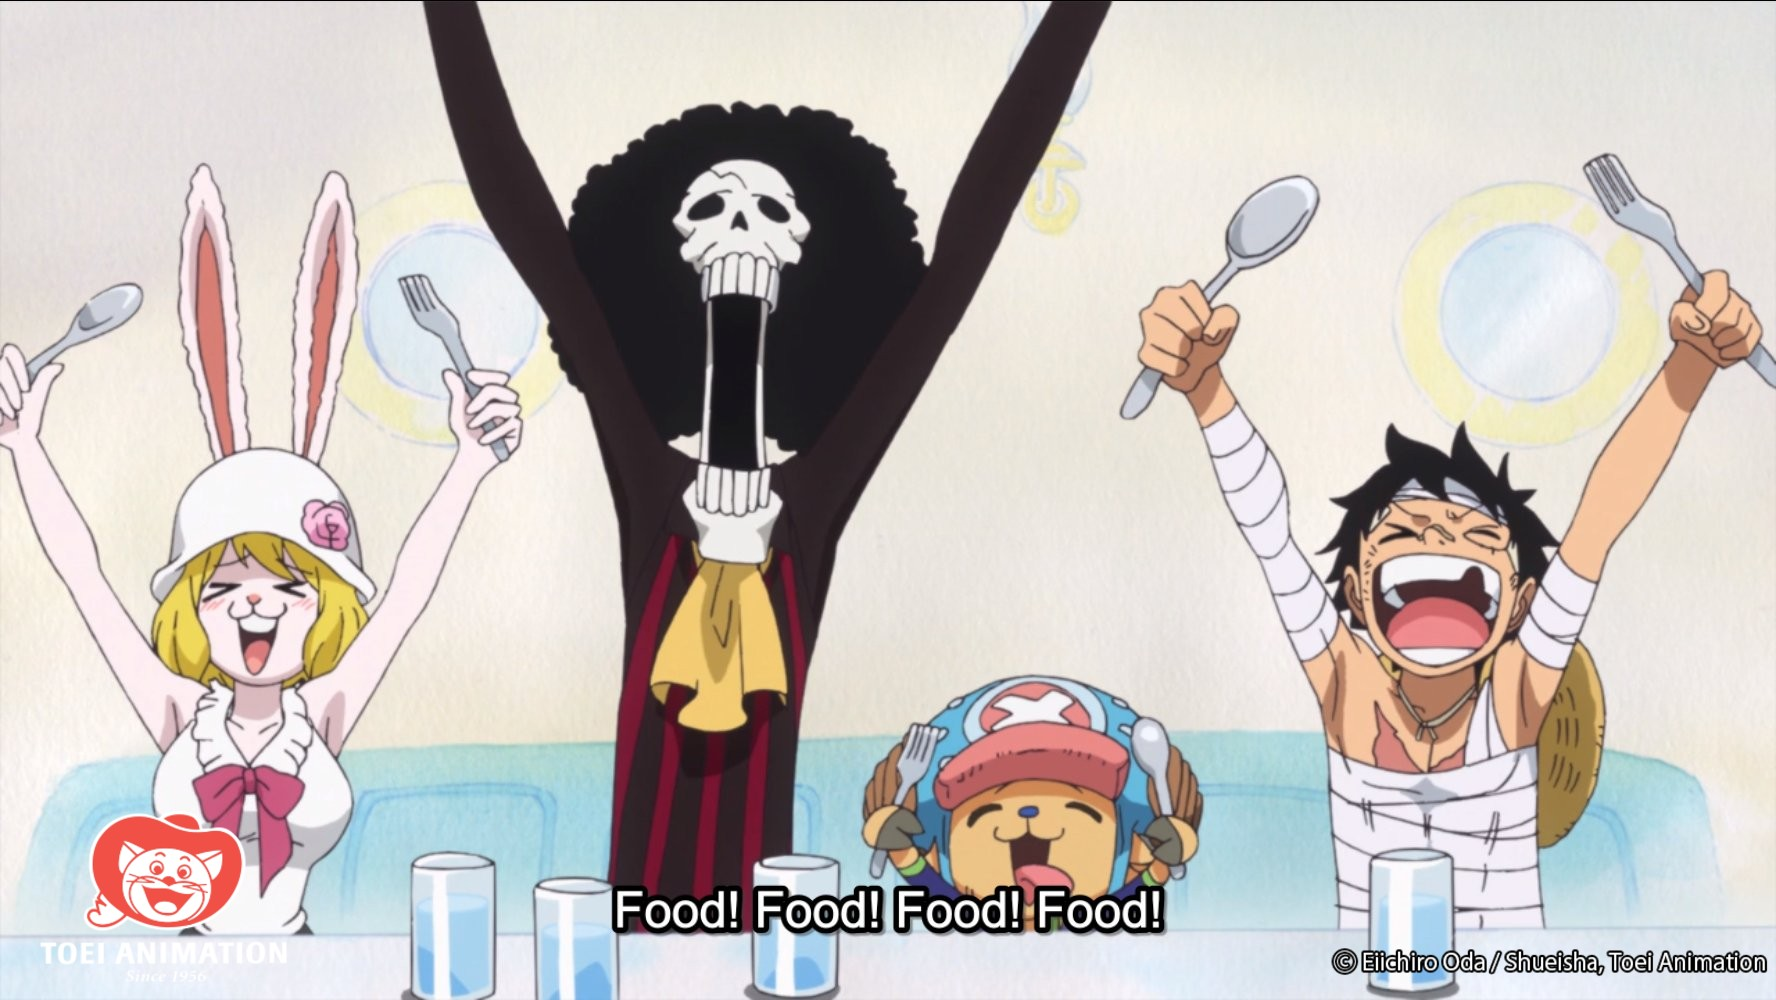 Carrot, Brook, Chopper, and Luffy clamor for Sanji's cooking in a scene from the One Piece TV anime.